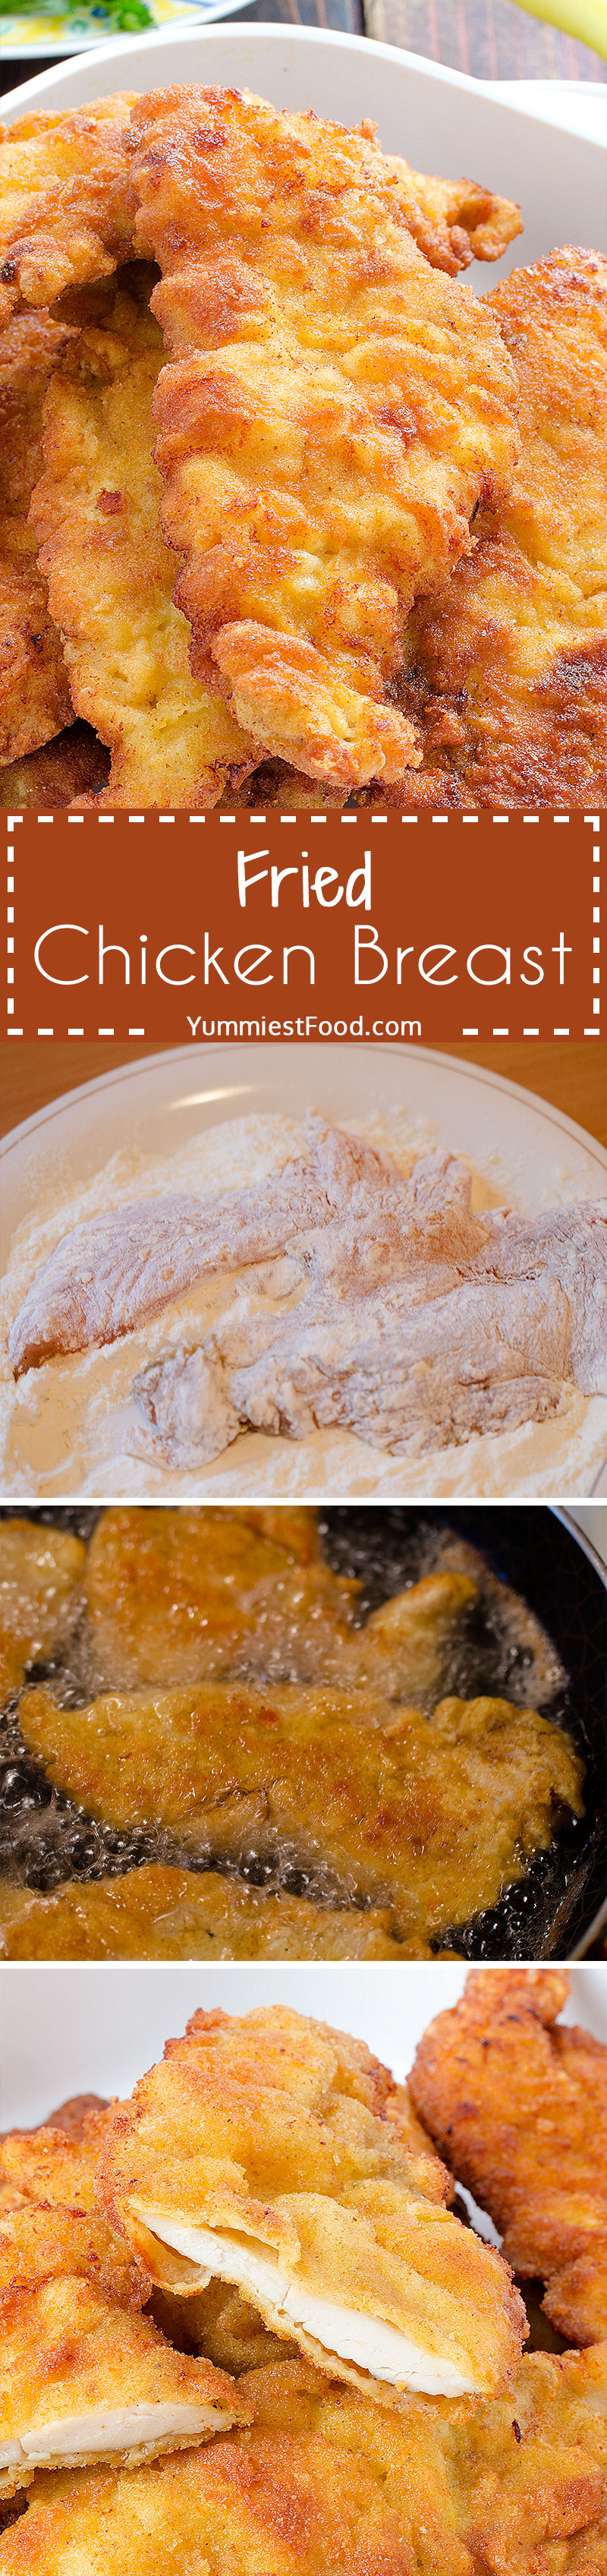 Fried chicken breast recipe from yummiest food cookbook fried chicken breast very interesting and easy way of preparing chicken breast and very forumfinder Choice Image